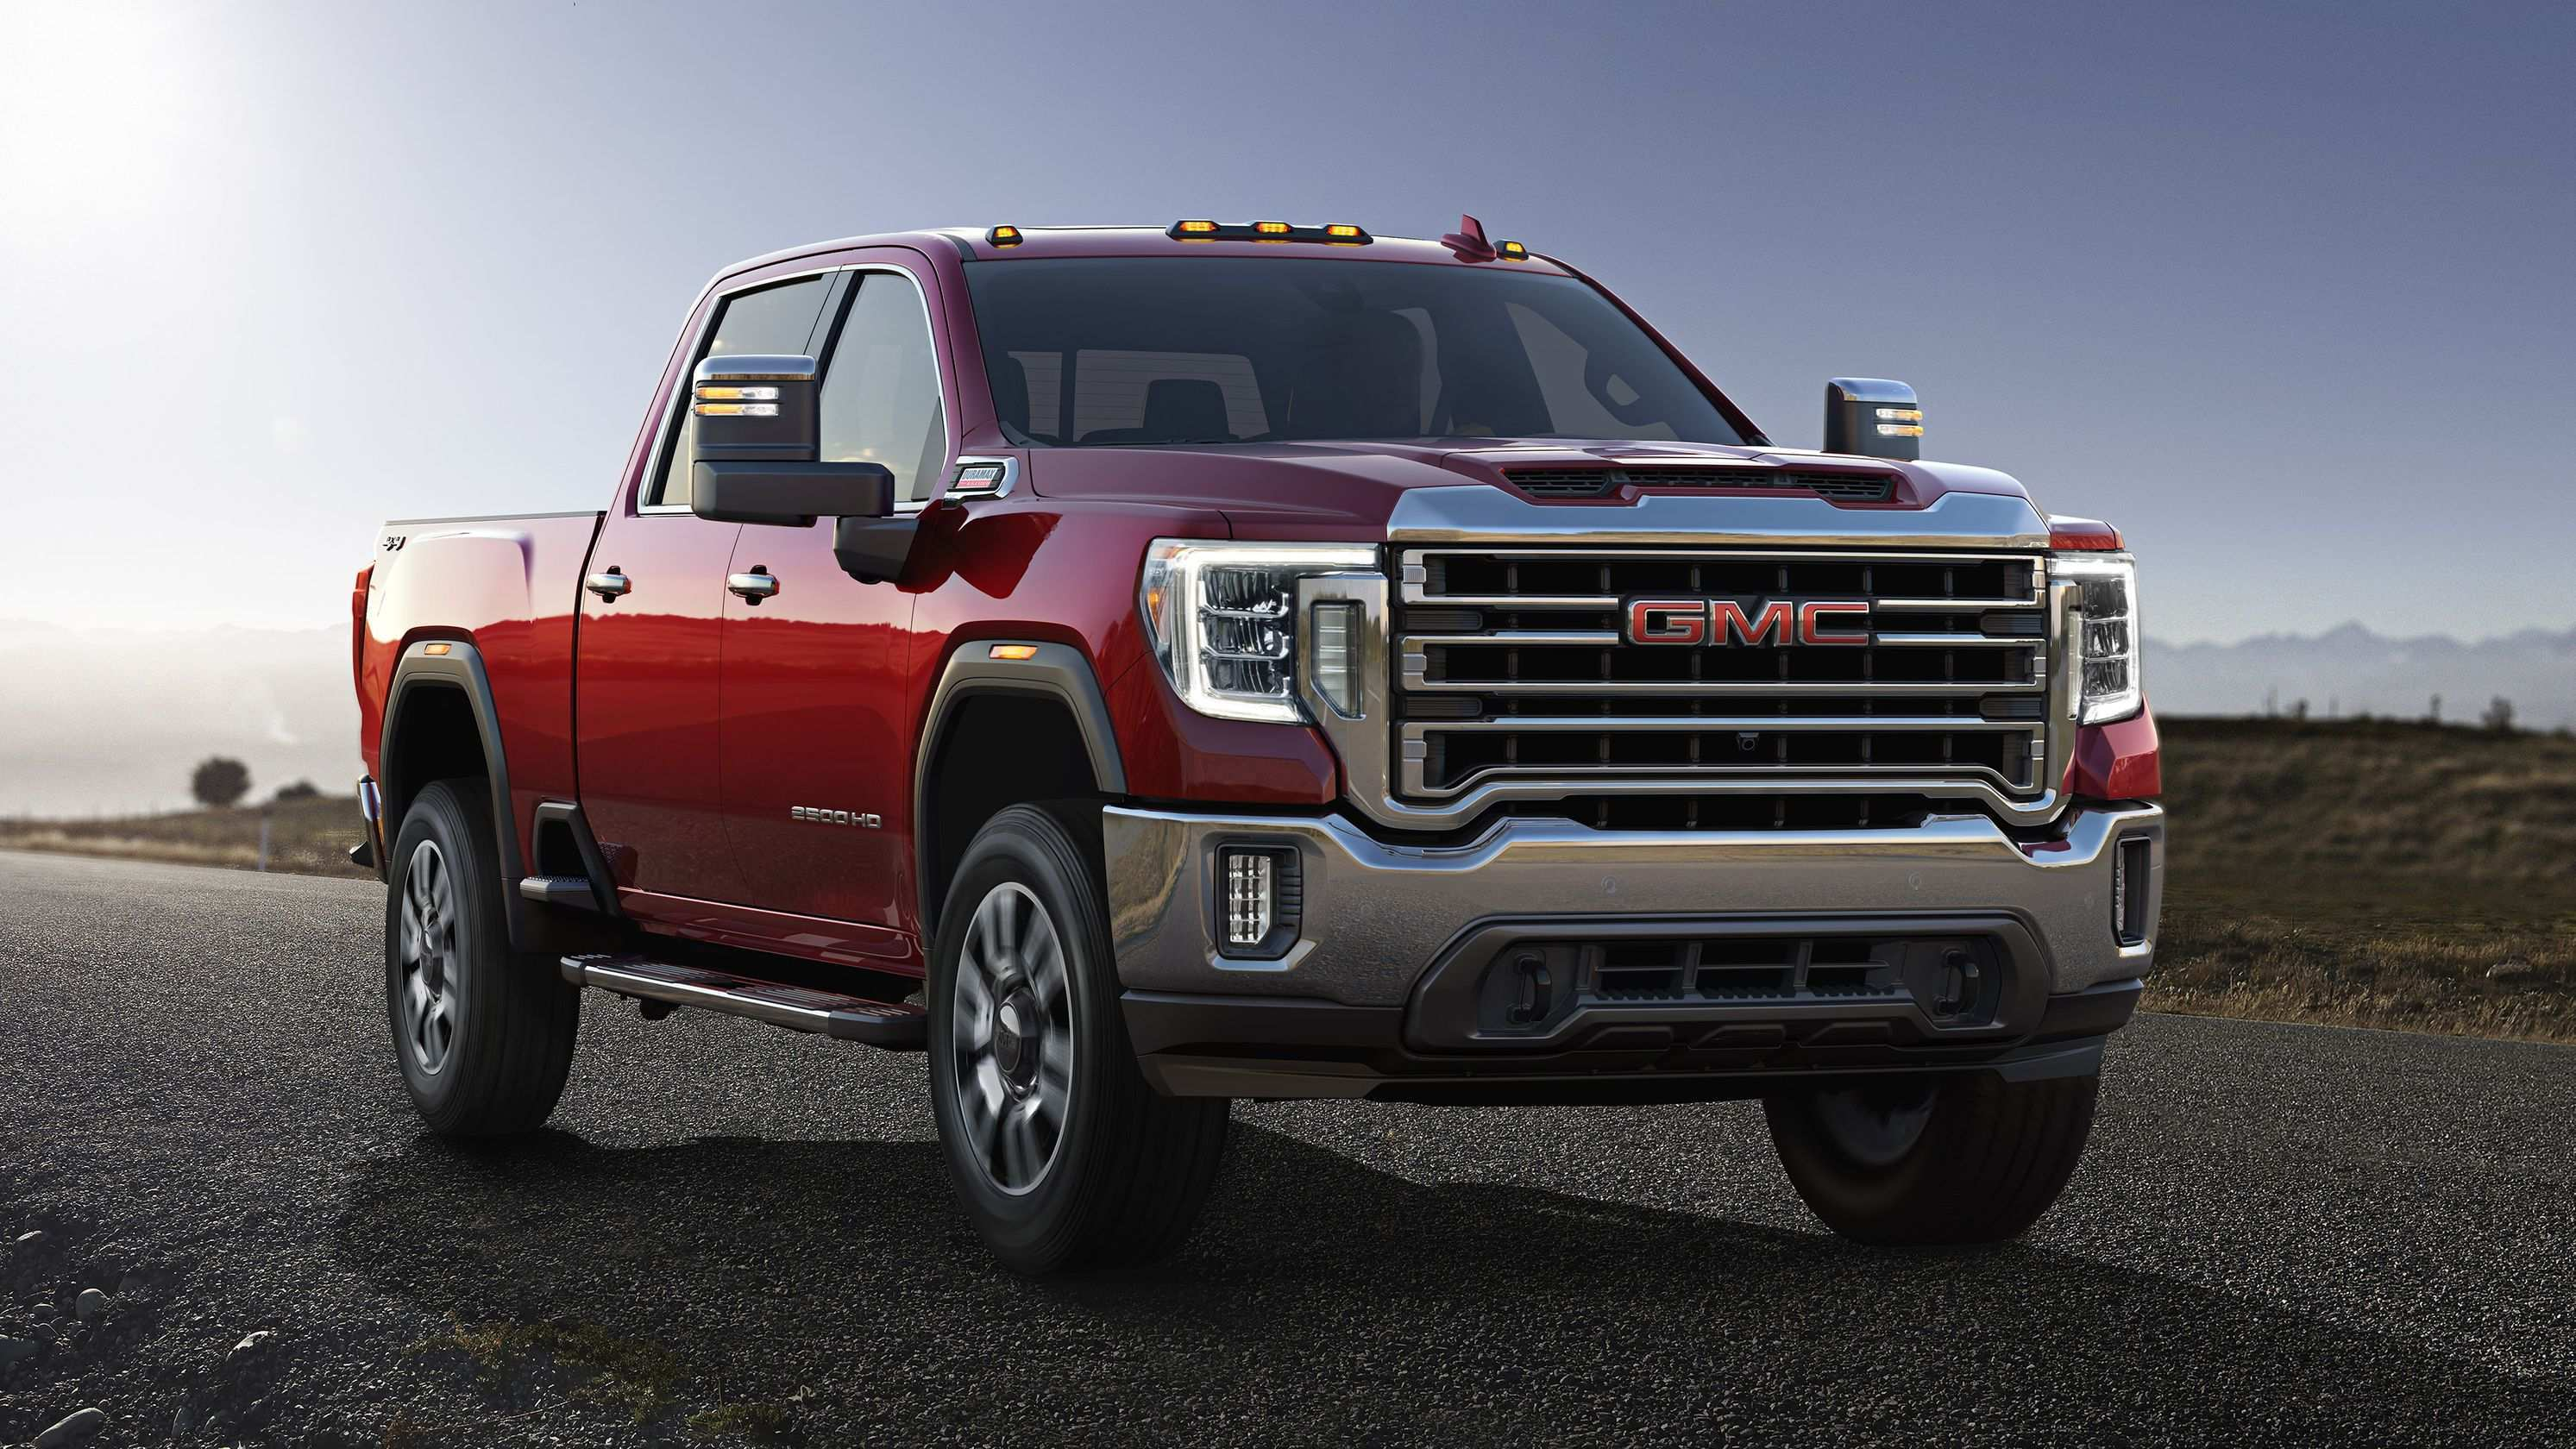 43 Concept of 2020 Gmc At4 Specs and Review by 2020 Gmc At4